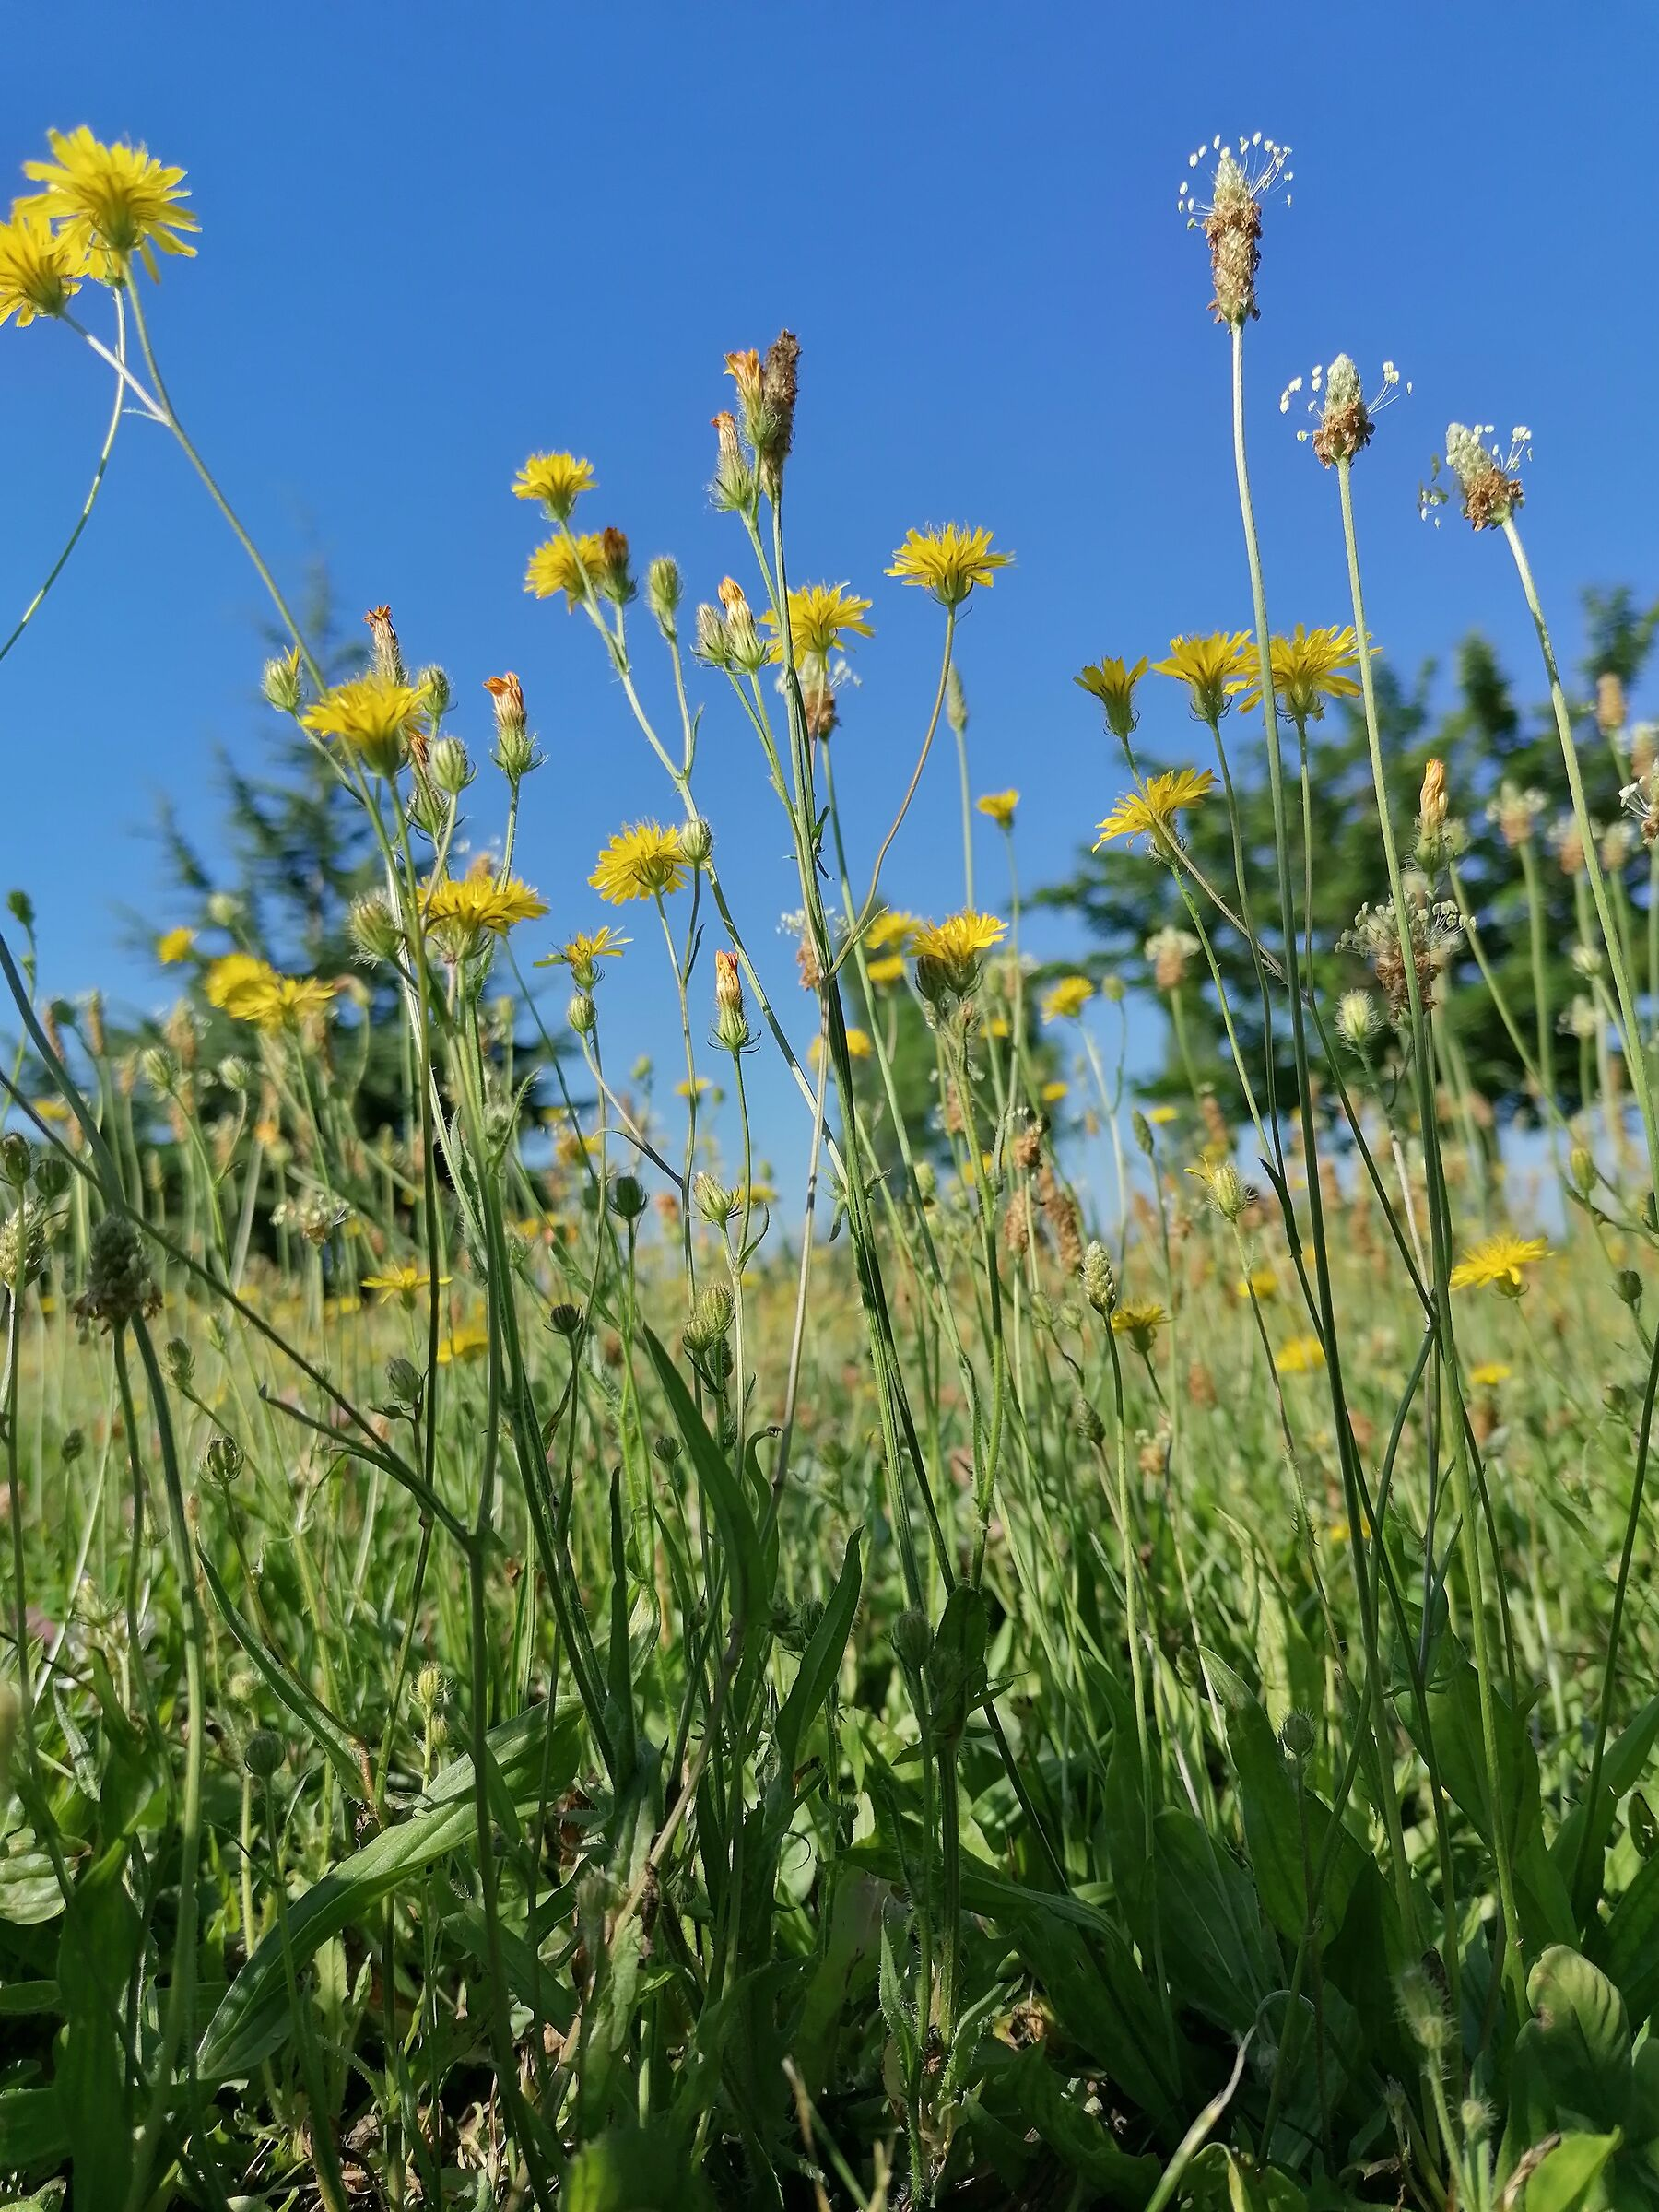 Blue sky and yellow flowers...